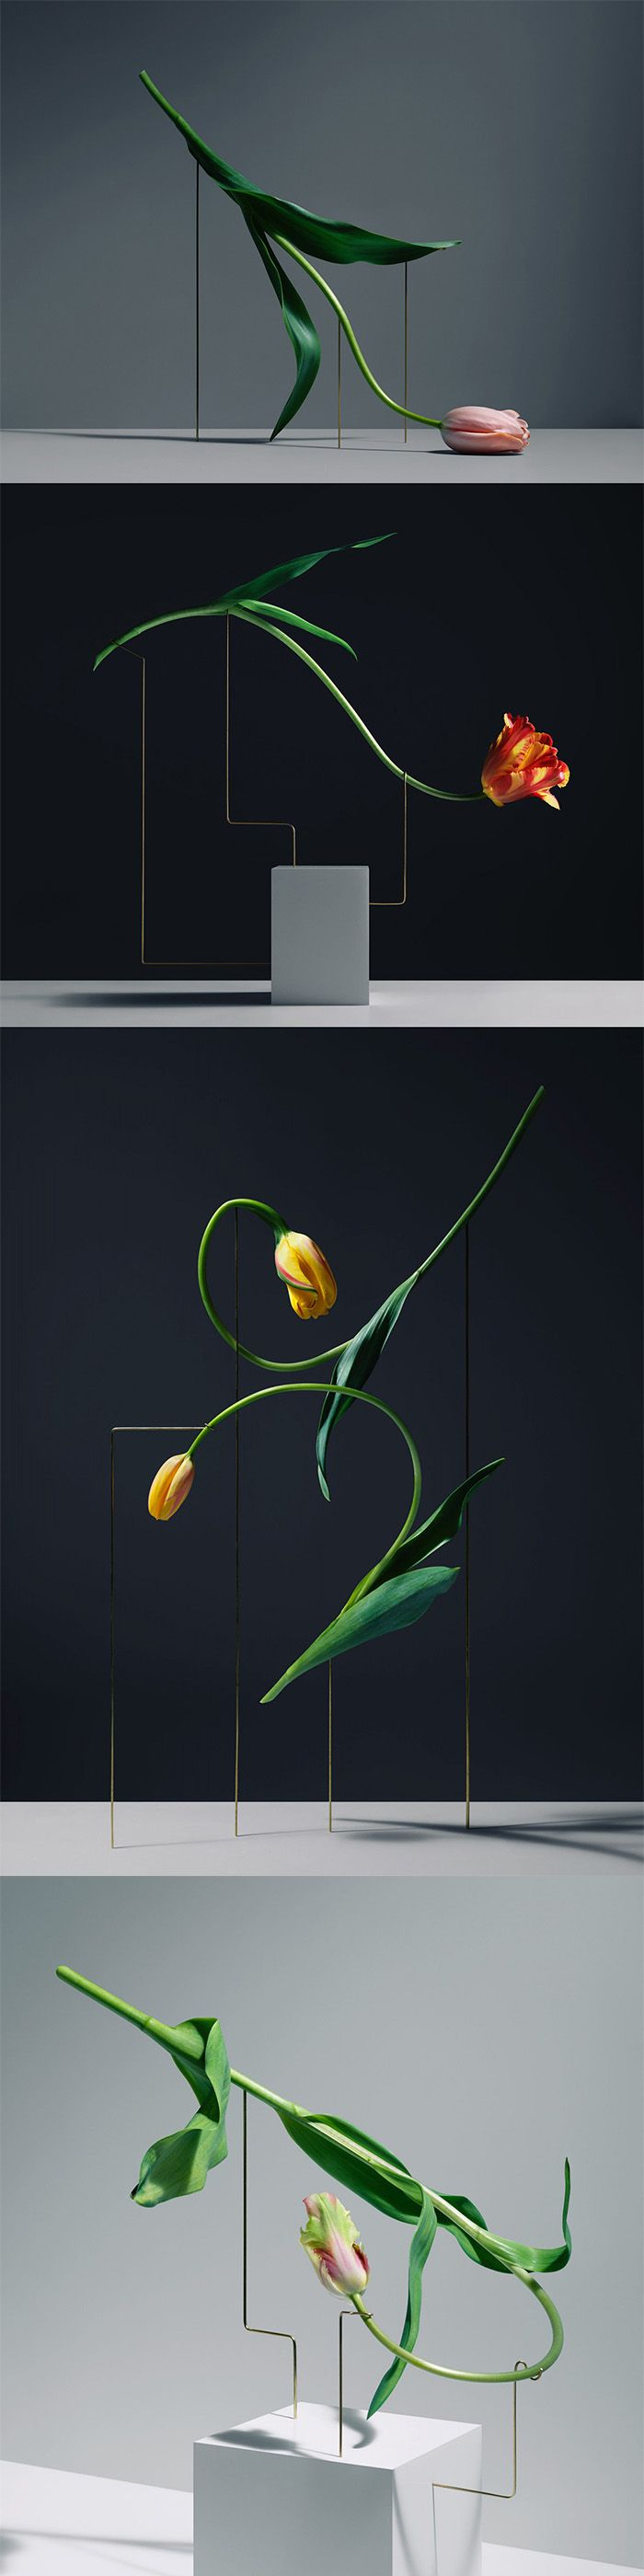 Postures by Carl Kleiner http://thecoolhunter.net/postures-by-carl-kleiner/   Cool table setting ideas.